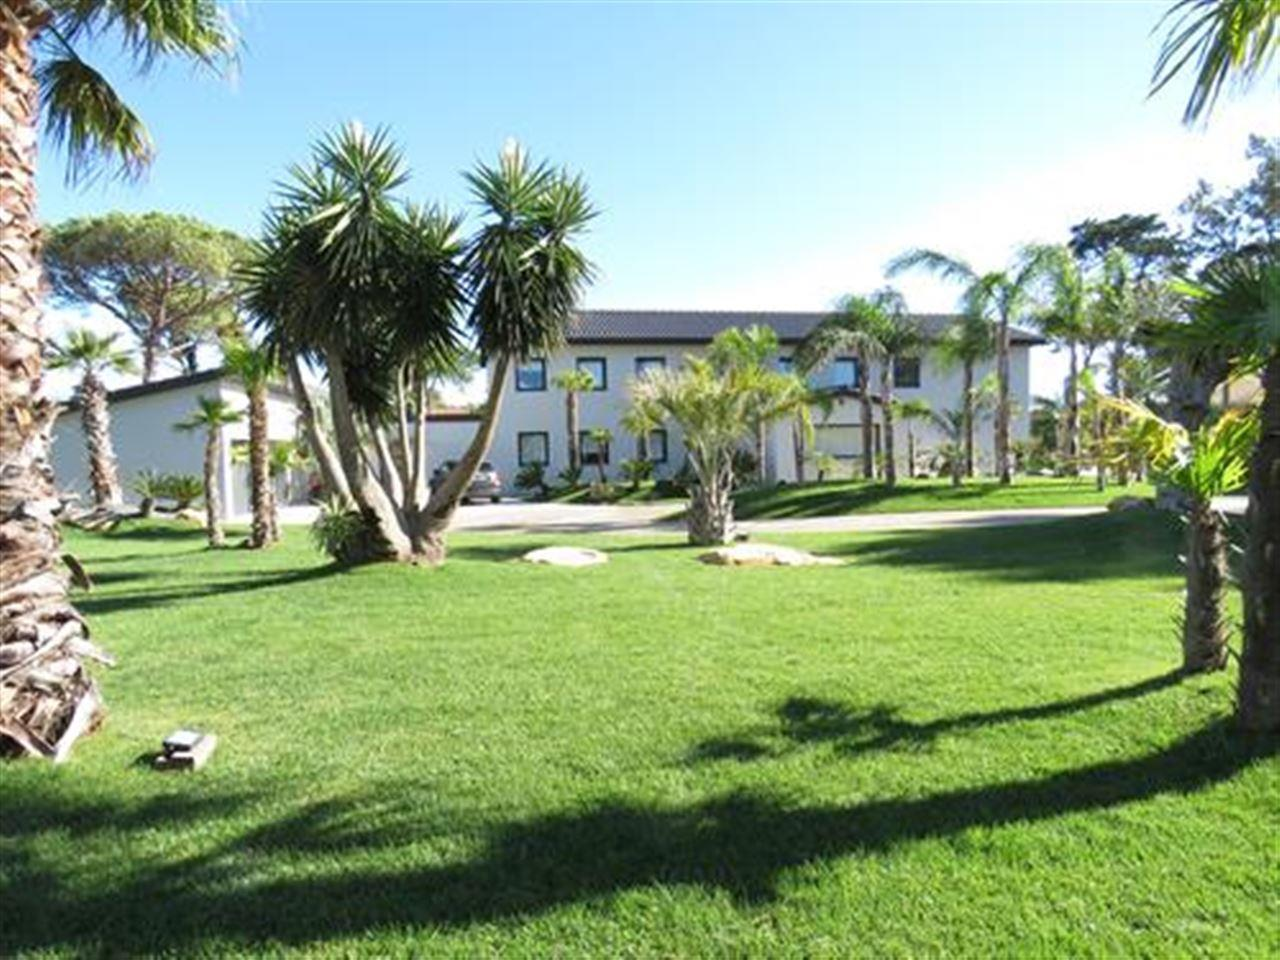 Moradia para Venda às Detached house, 8 bedrooms, for Sale Cascais, Lisboa, Portugal